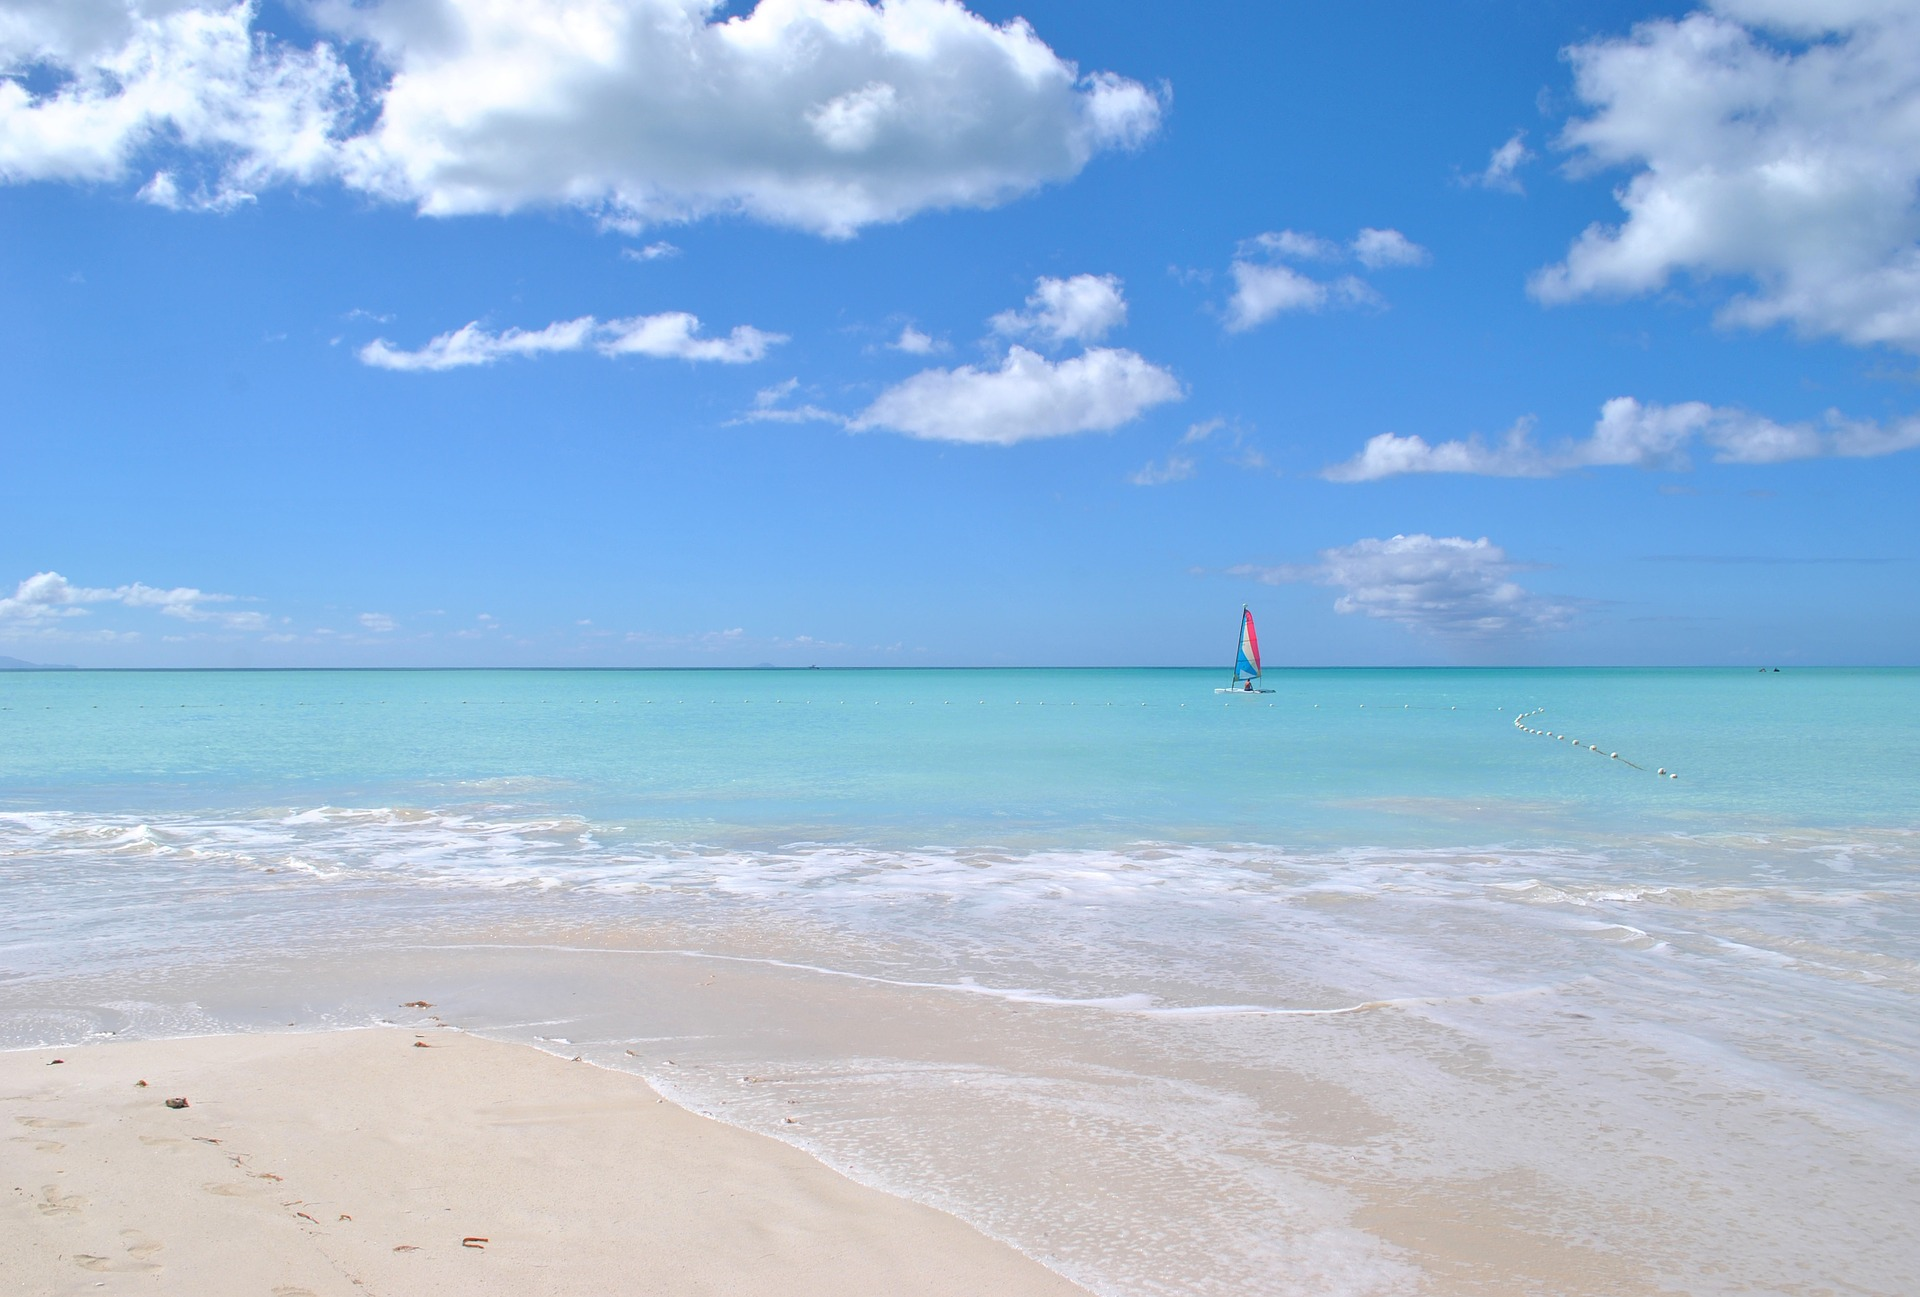 Person windsurfing in the distance in the turquoise waters of the Caribbean